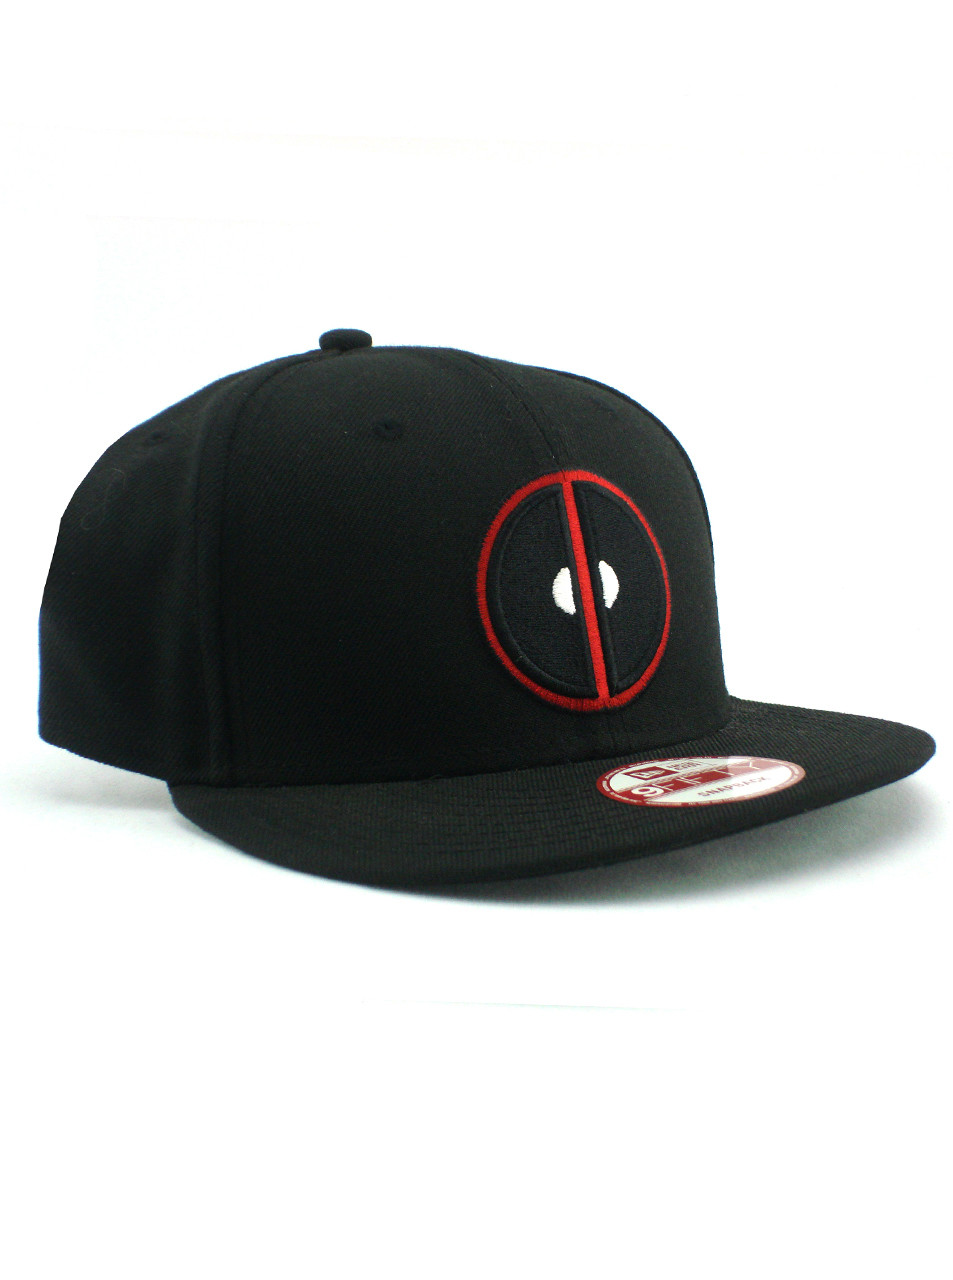 2c4c7ad8 Deadpool Snapback Hat - The Best Hat 2018